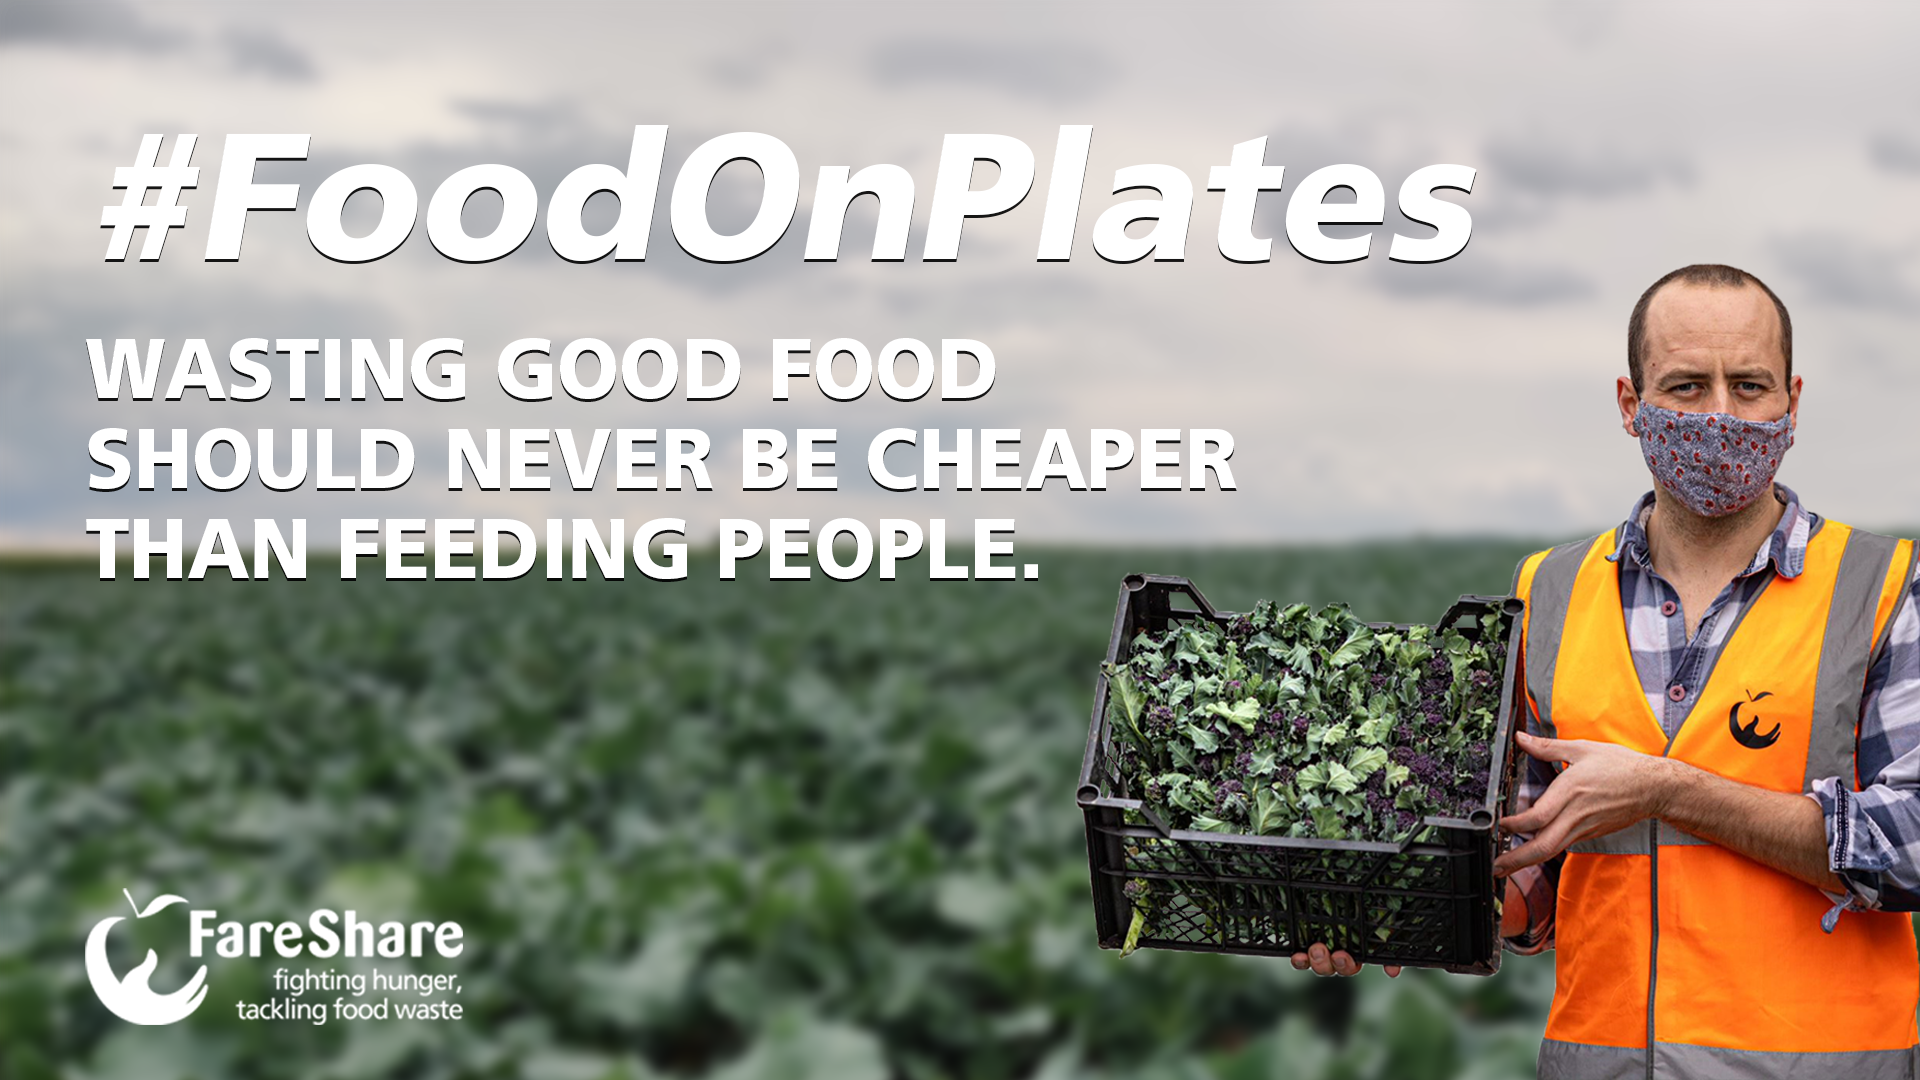 Generic_FoodOnPlates_Share.png